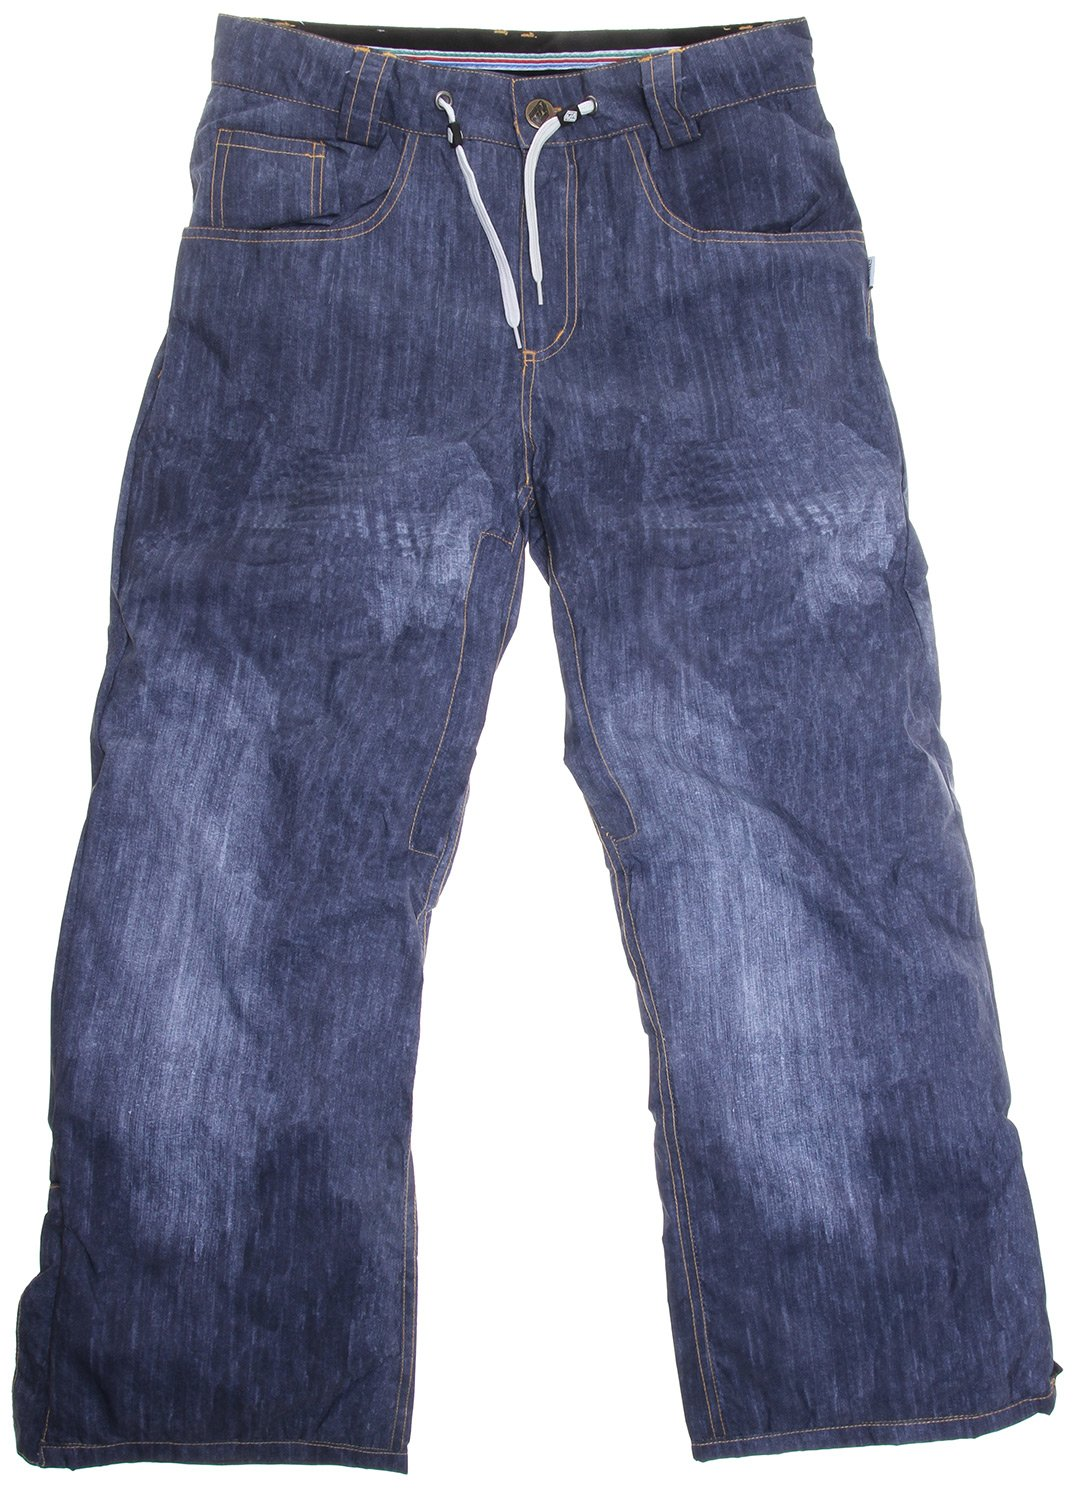 2117 of Sweden Junior Skihose Bräcke 7524926 denim kaufen